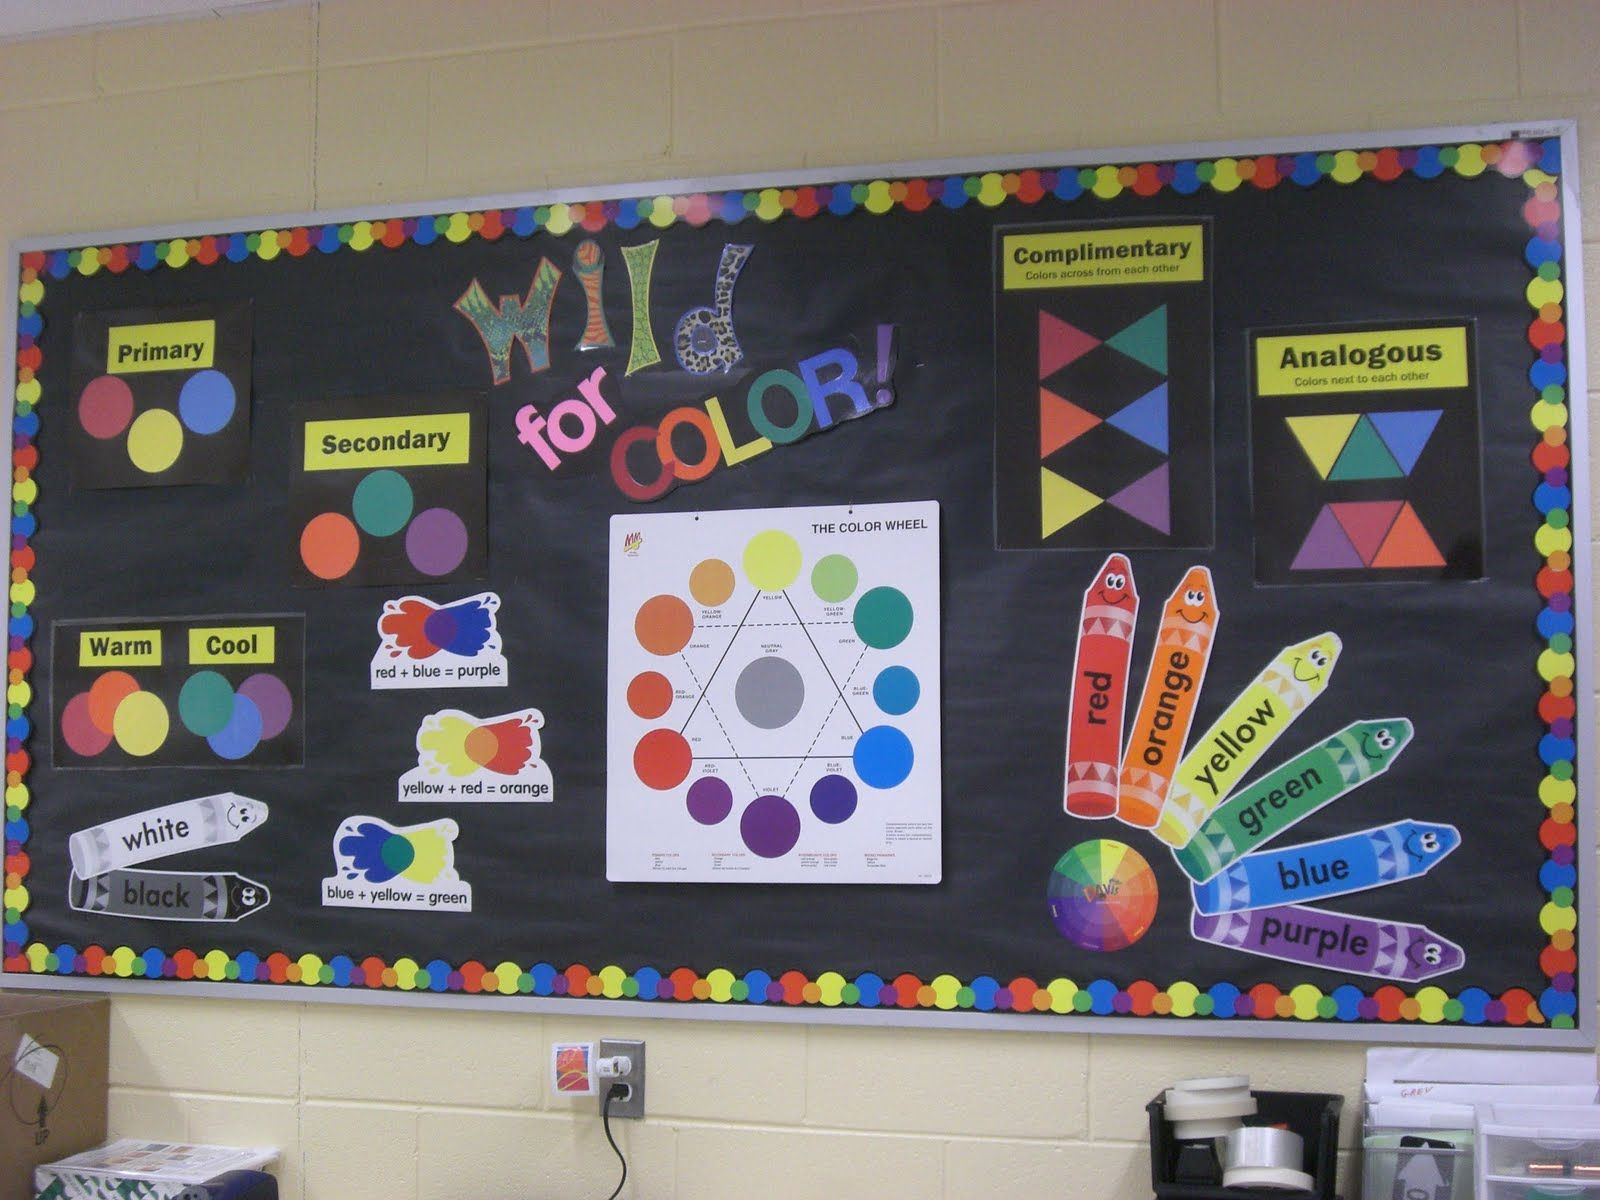 Arts Et Rangements Christine Roy This Is A Nice Display Of Color Theory For Elementary Art Great